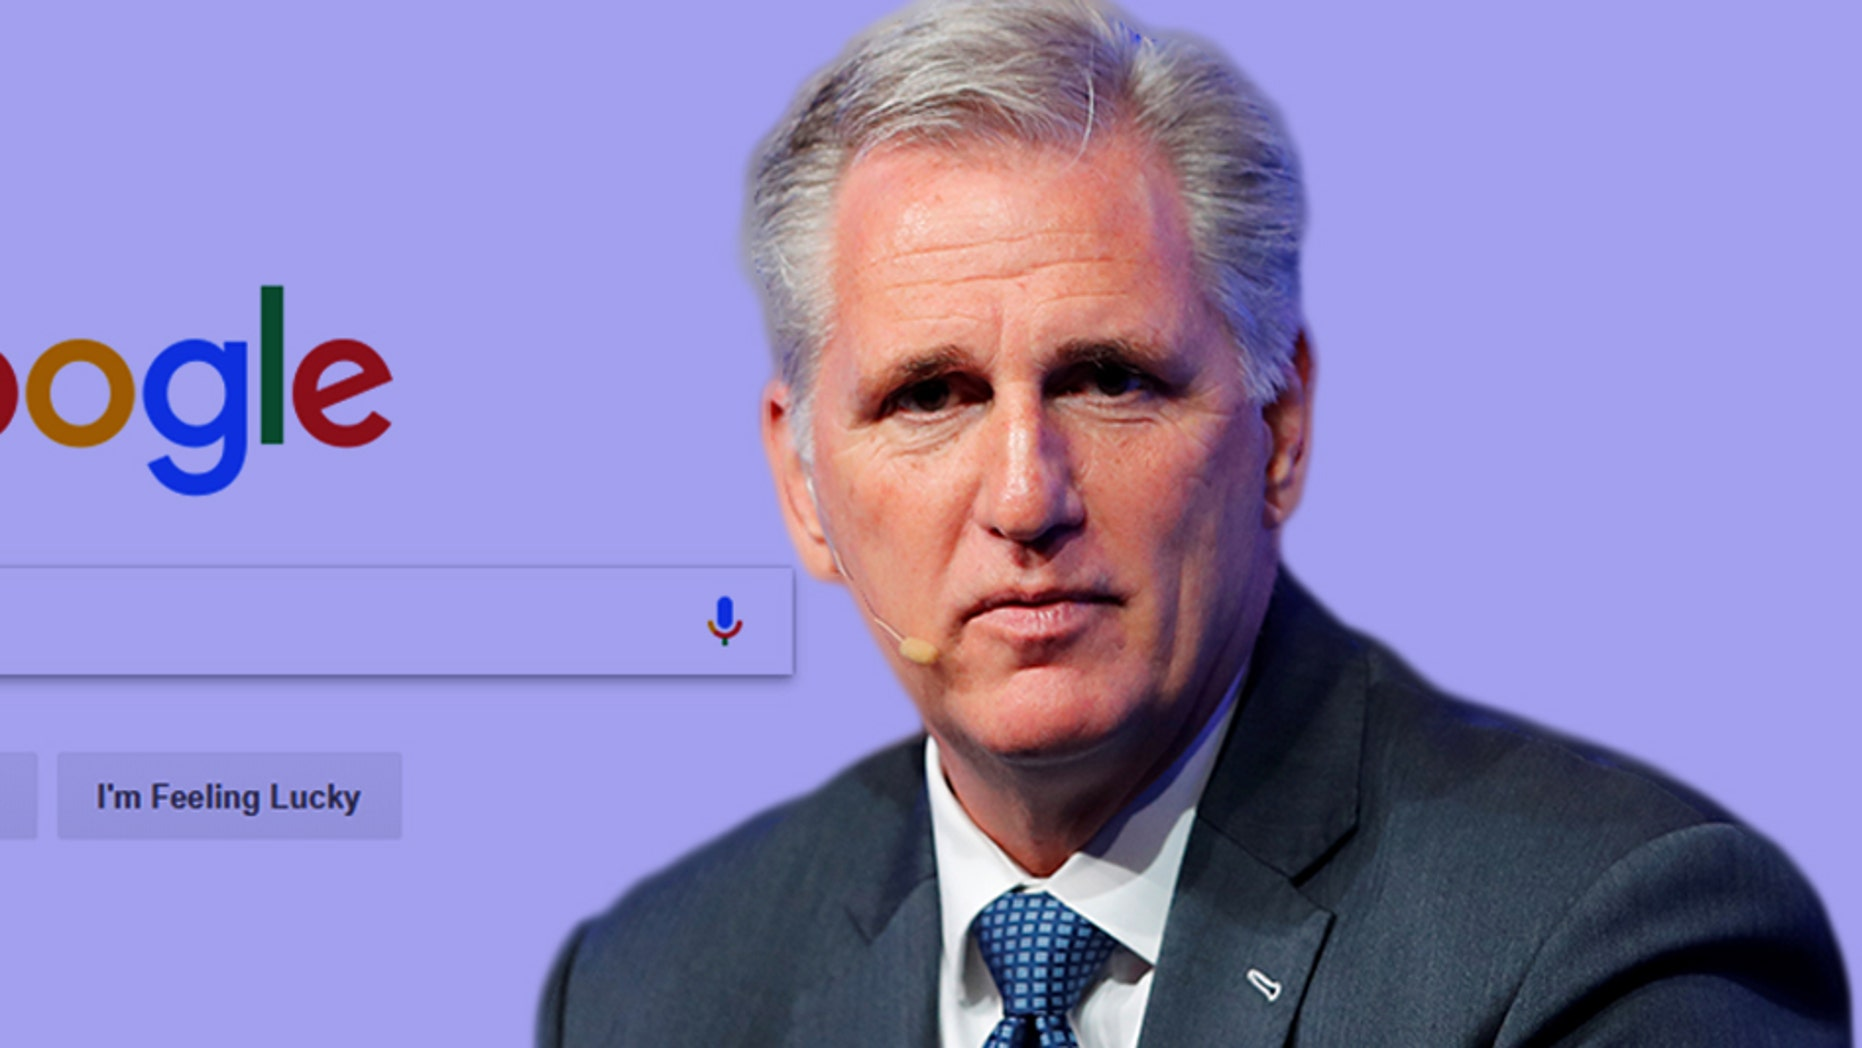 House Majority Leader Kevin McCarthy, R-Calif., has spoken out about what he views as political bias in the tech industry.